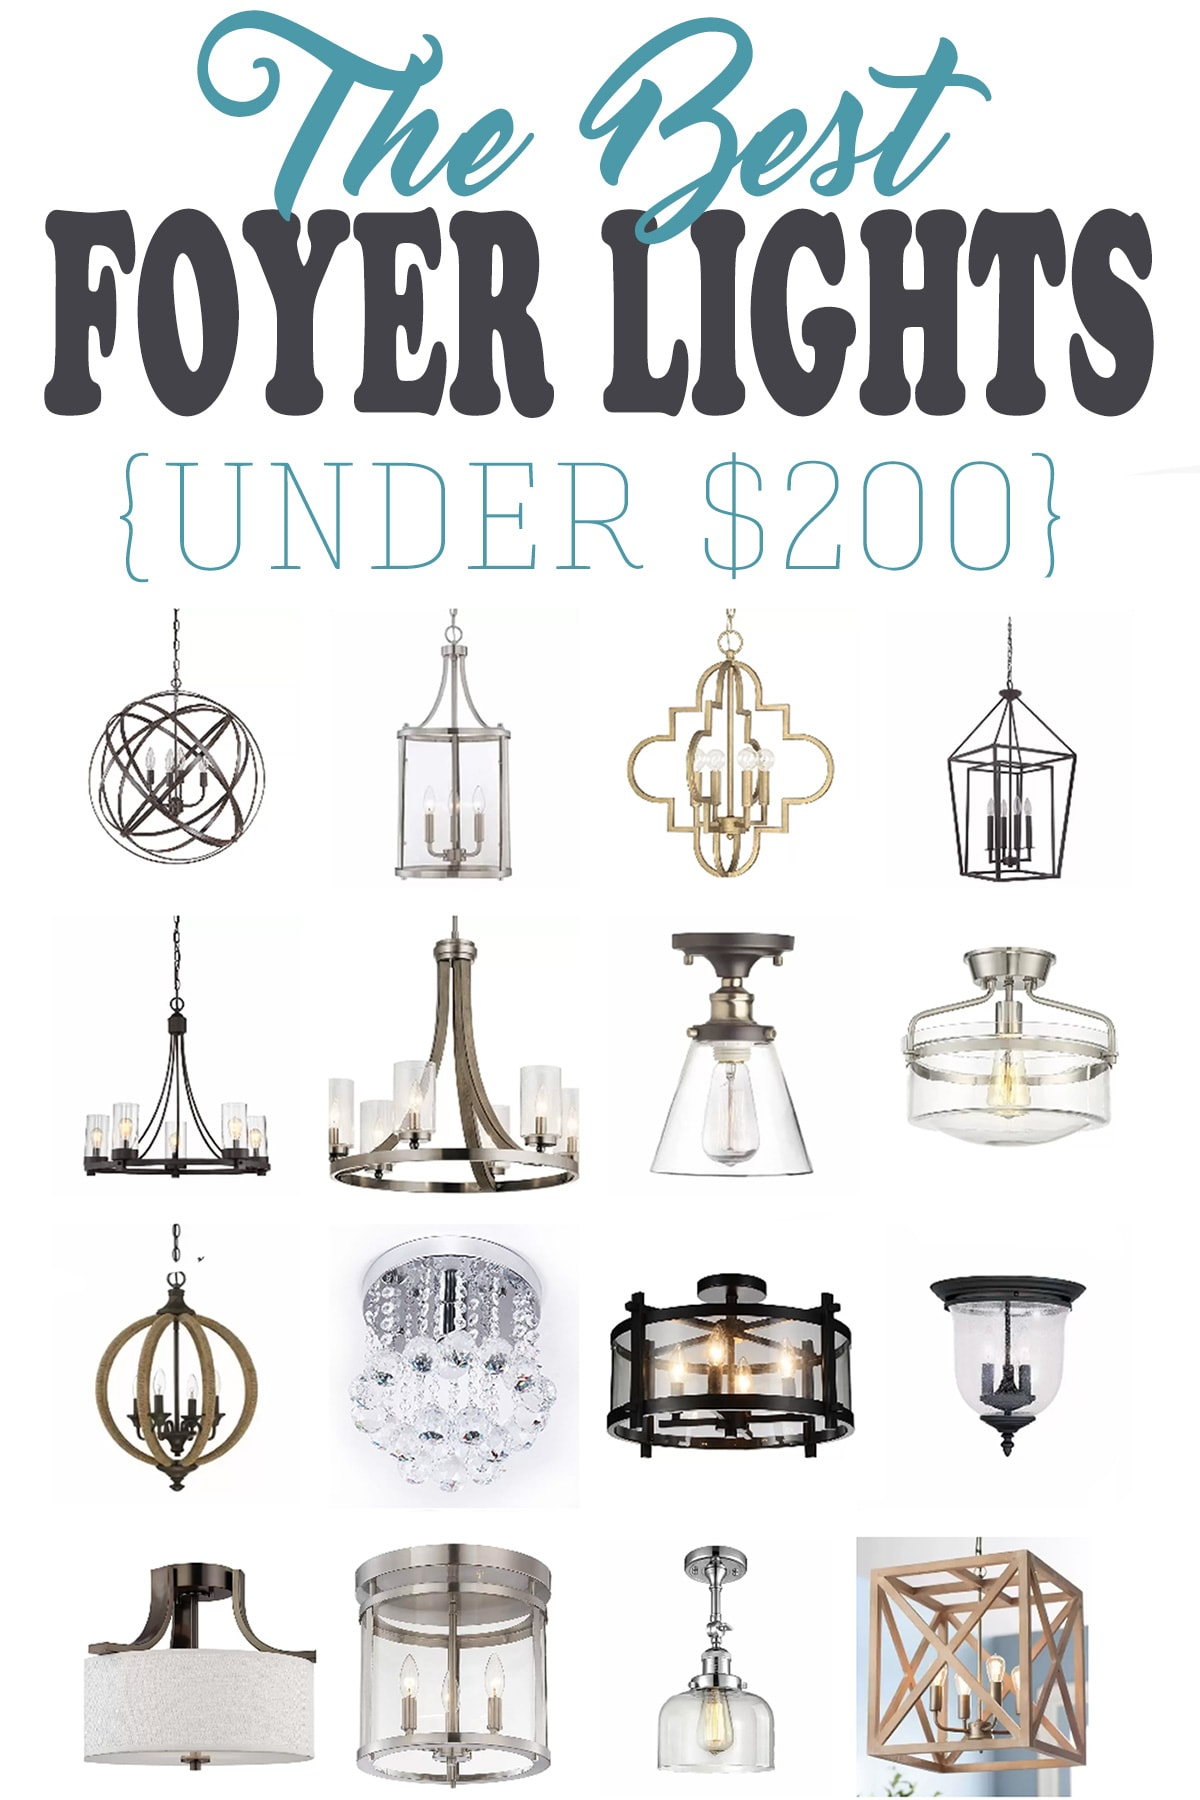 15 of the best entryway lighting fixtures for a small budget. These foyer lights and chandeliers are showstoppers